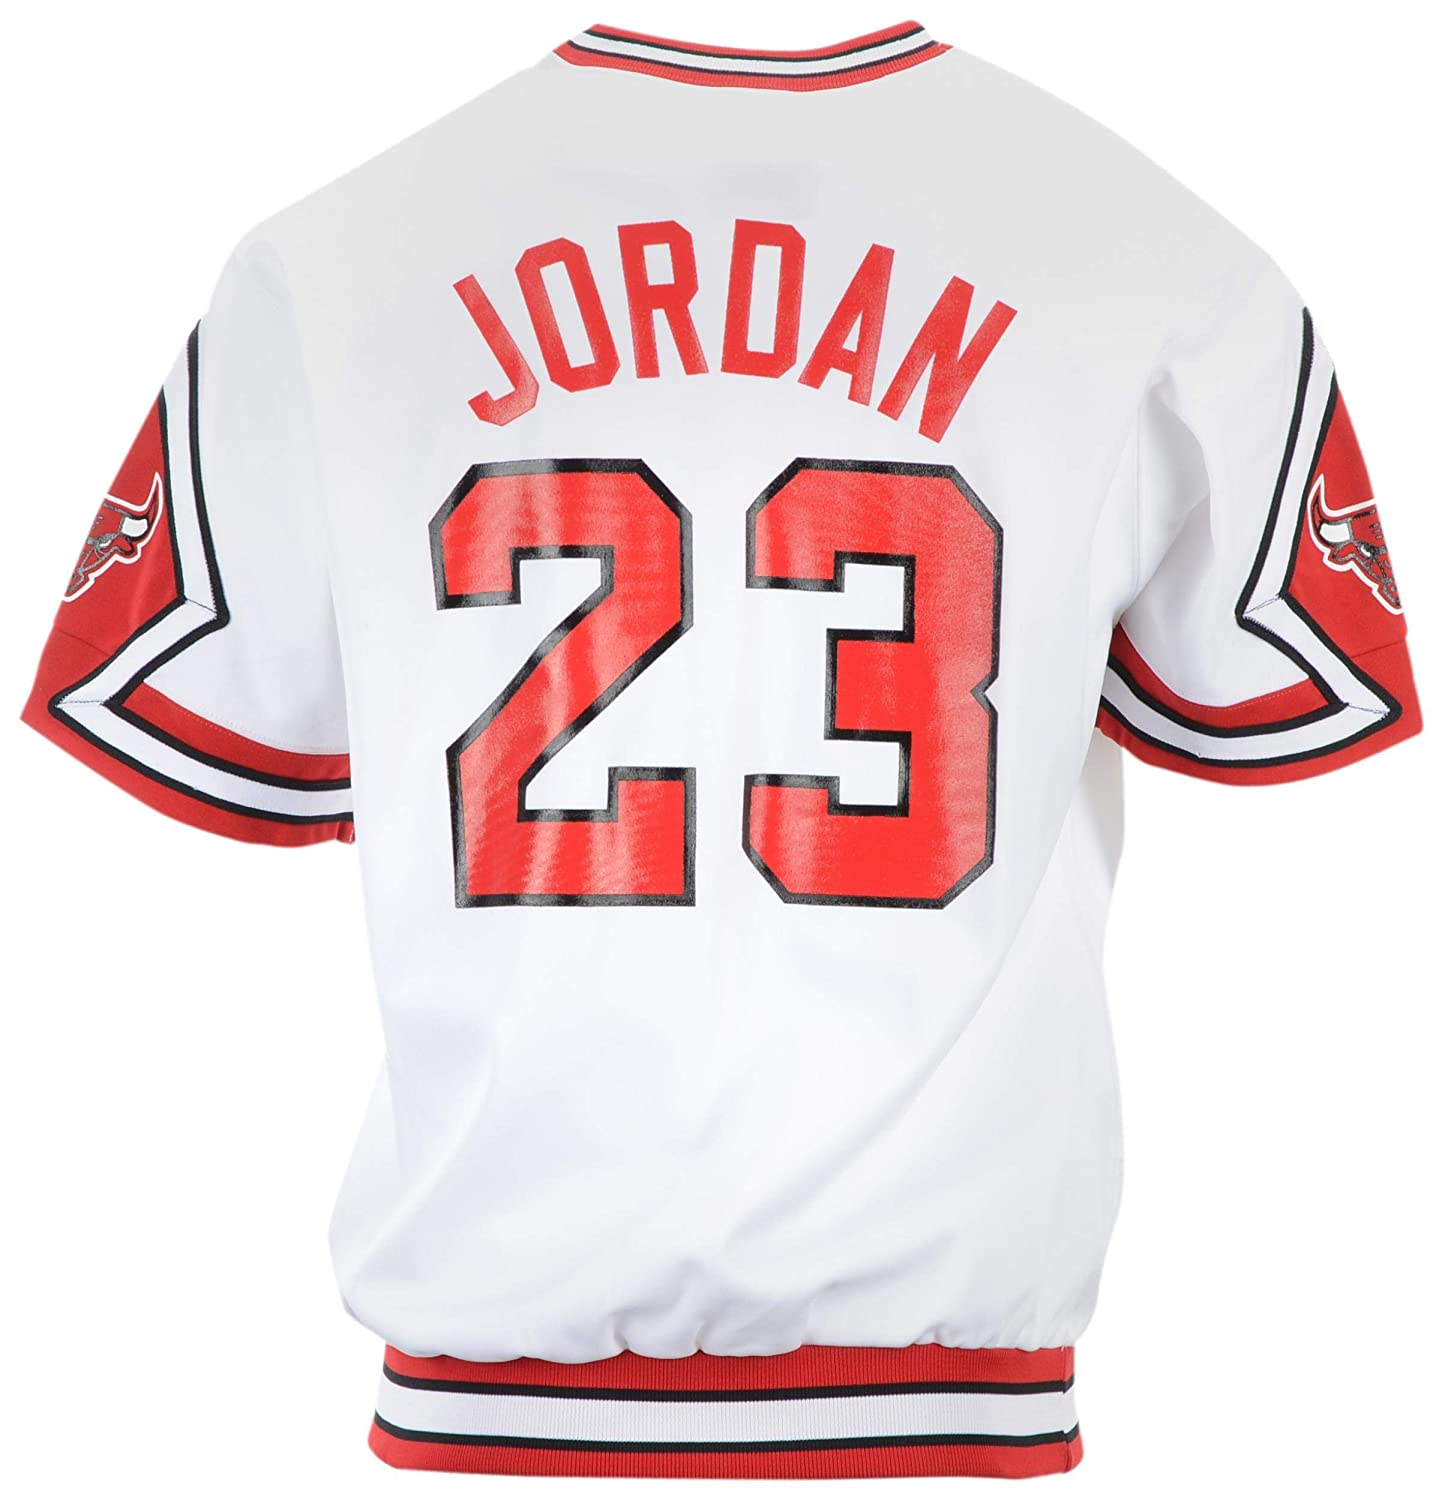 a4fb0fafb126fc Michael Jordan Chicago Bulls Autographed White Jacket - PSA DNA Certified -  NBA Autographed Miscellaneous Items at Amazon s Sports Collectibles Store